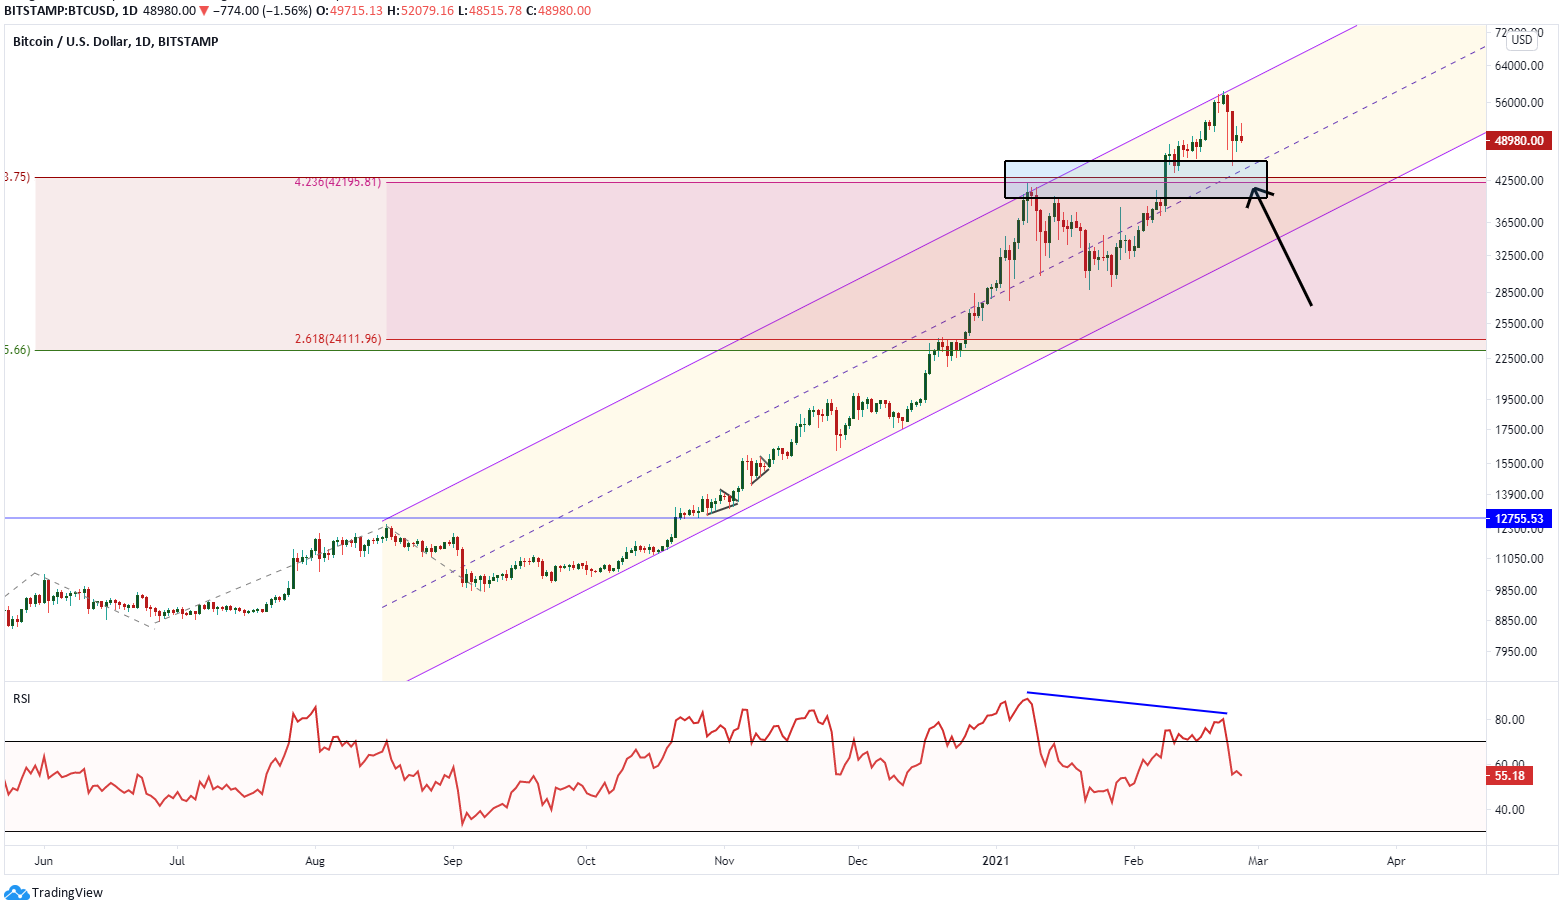 Bitcoin Price Retraces Back to Previous Support